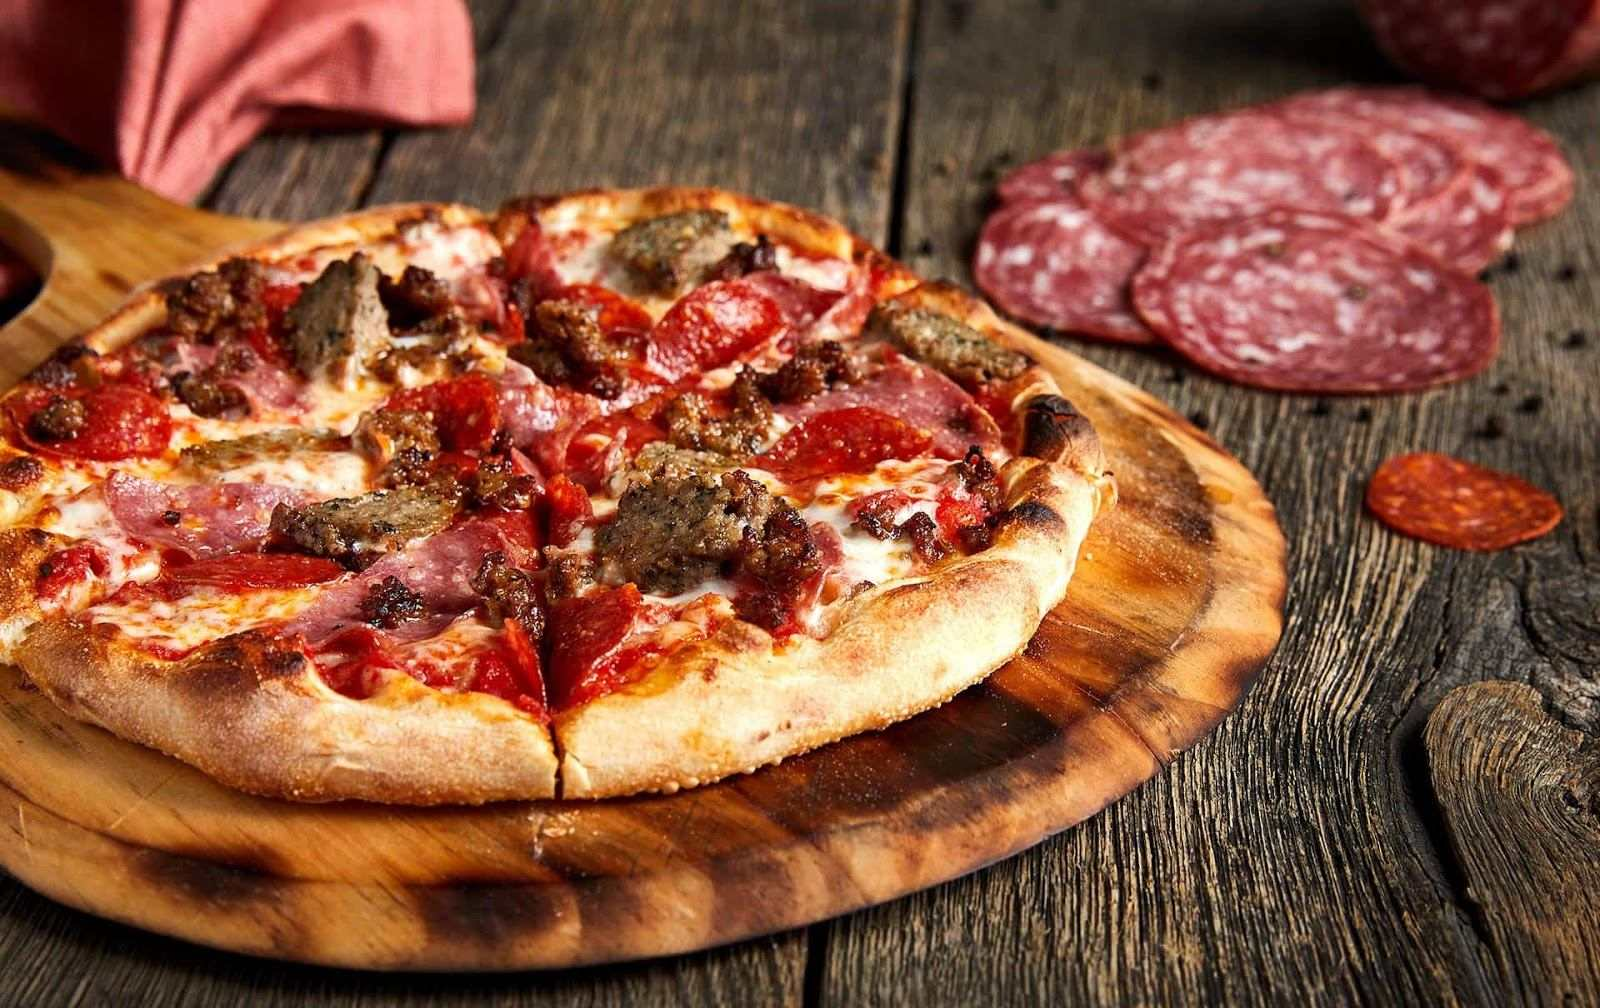 meatball and pepperoni pizza